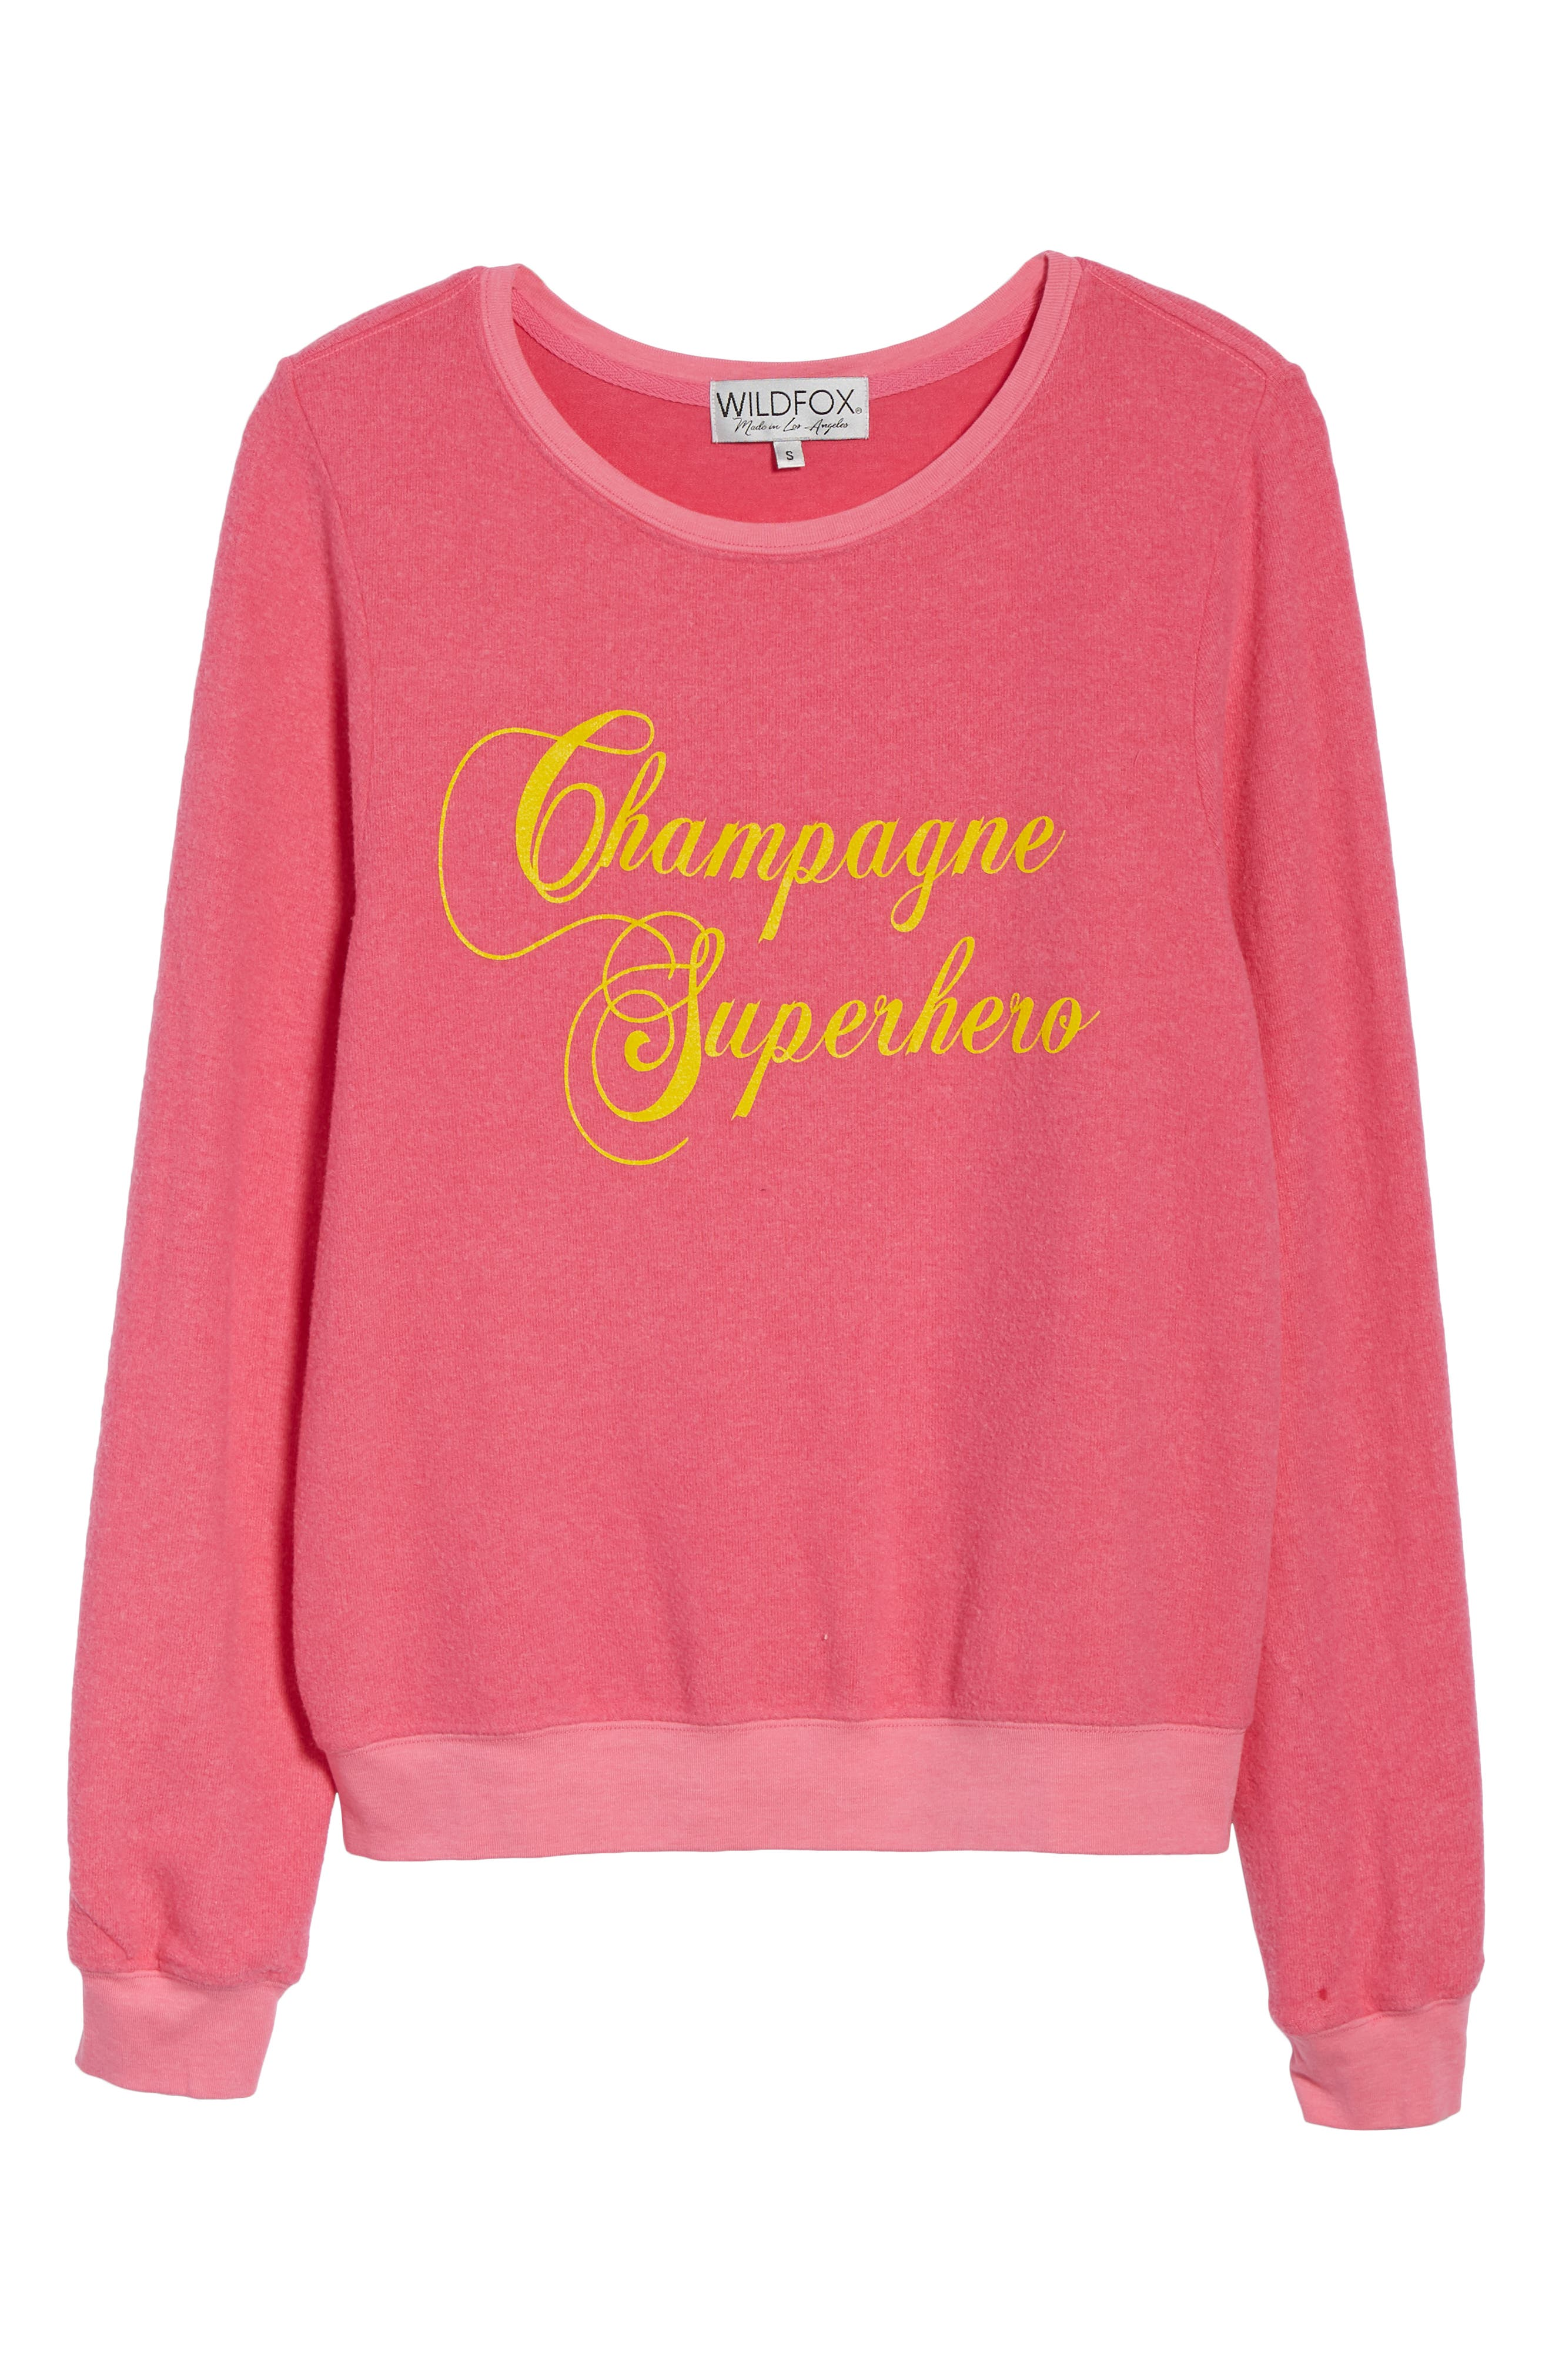 WILDFOX,                             Baggy Beach Jumper - Champagne Superhero Pullover,                             Alternate thumbnail 6, color,                             650